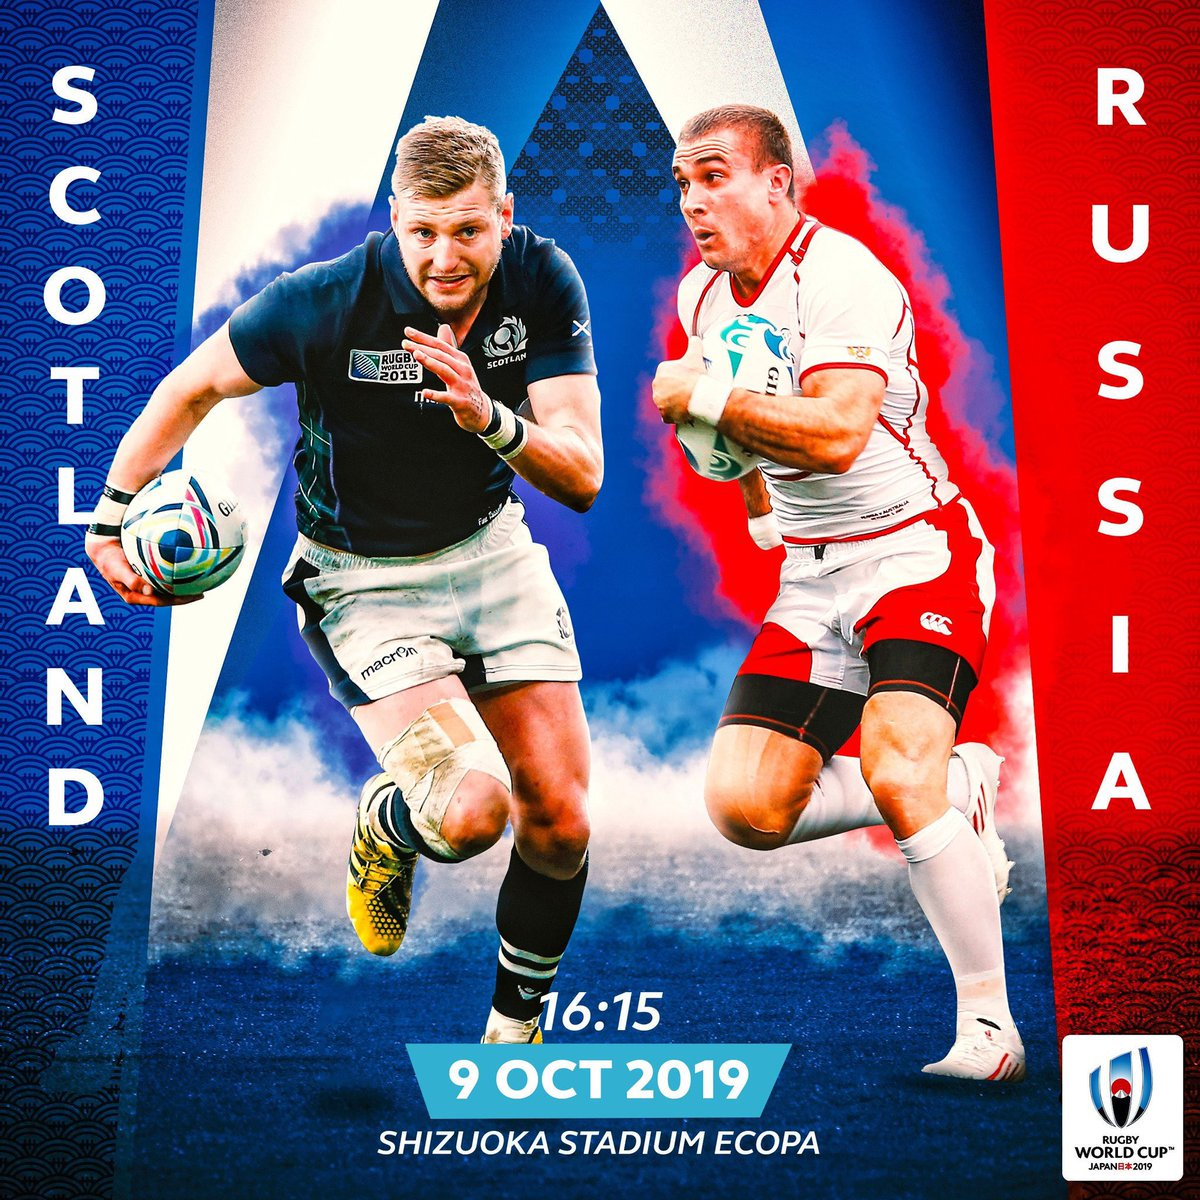 test Twitter Media - Limited category B+D tickets available for @Scotlandteam V @russiarugby  📍 Shizuoka Stadium Ecopa  🗓 09 Oct, 16:15hrs (GMT+9)   https://t.co/wiftbbRu2B https://t.co/mv4hsMpjxb